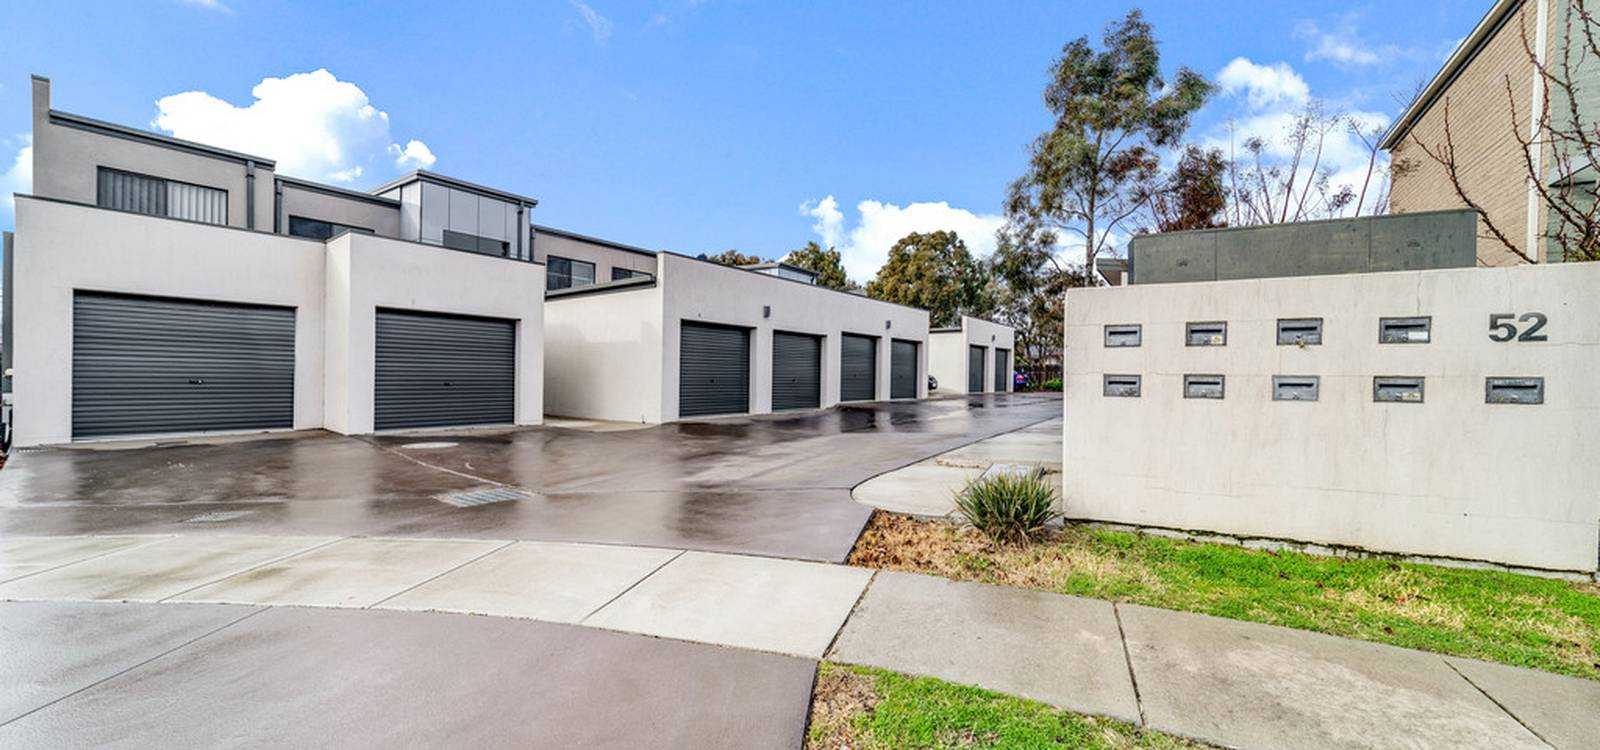 6/52 Jeff Snell Crescent DUNLOP, ACT 2615 - photo 1